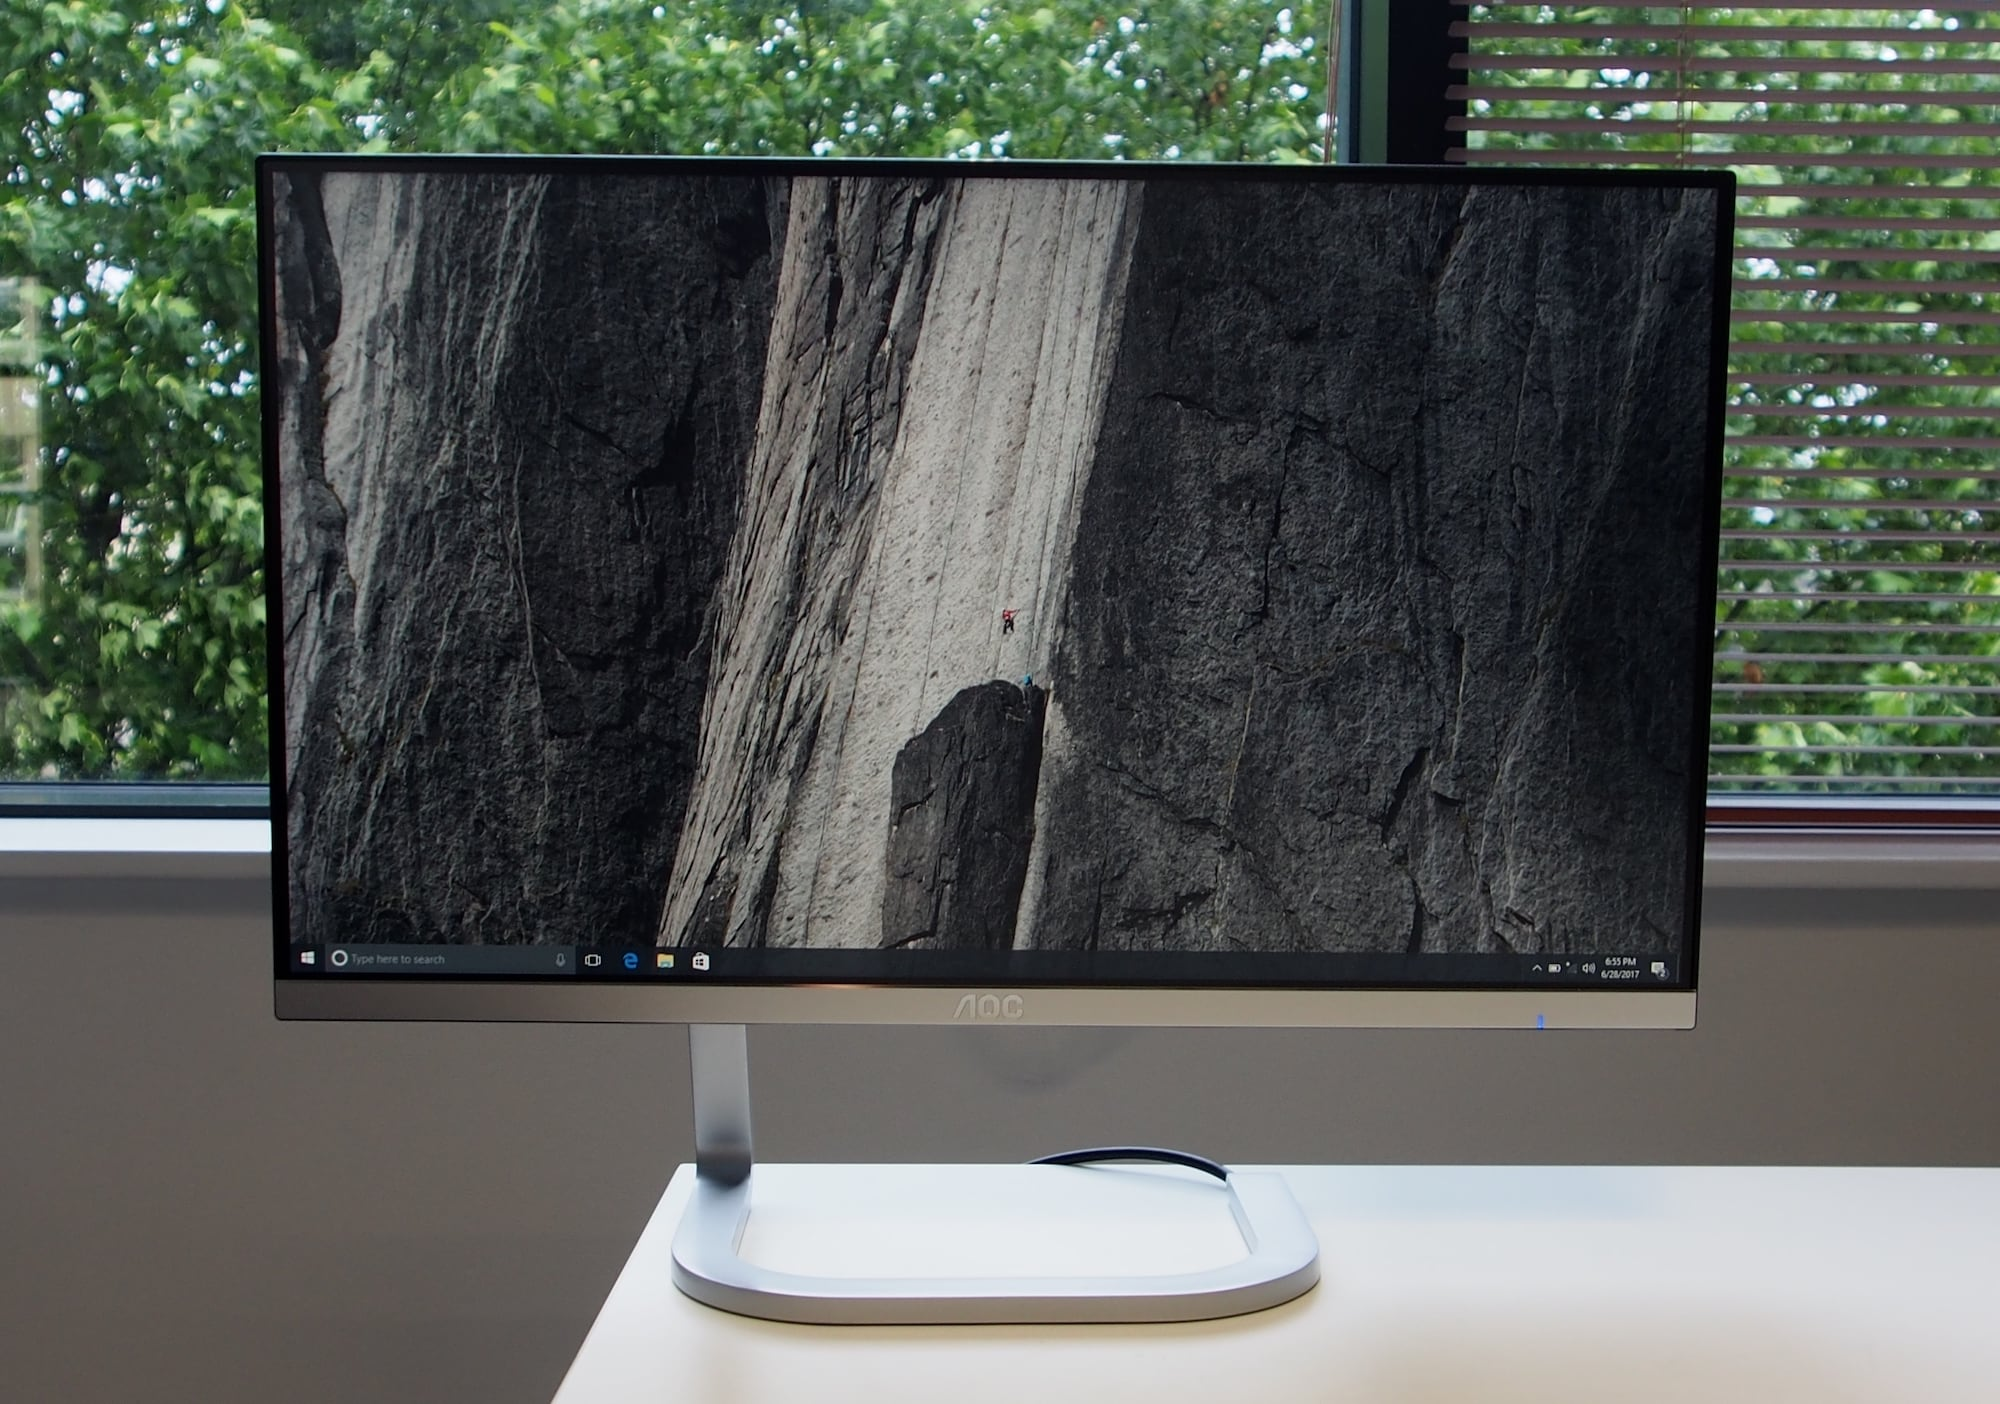 AOC Porsche 24-Inch Ultra Slim LED Monitor